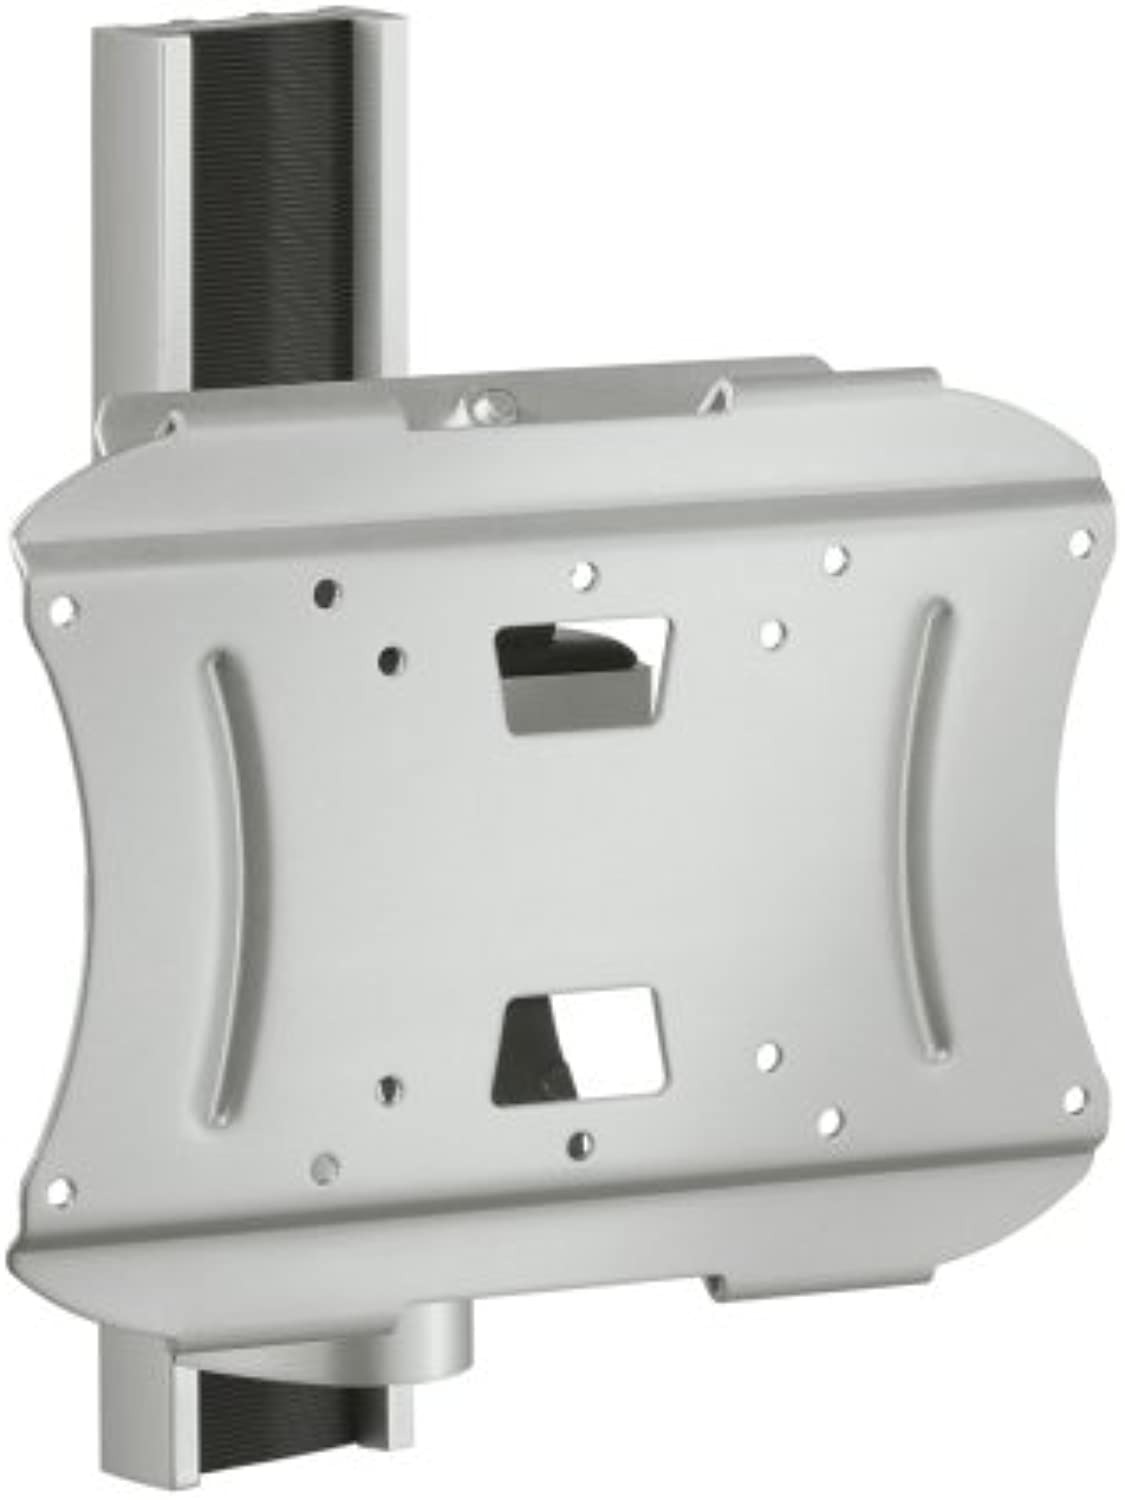 Vogel's VFW 232 Silver LCD Wall Support for 23 to 70cm Screens